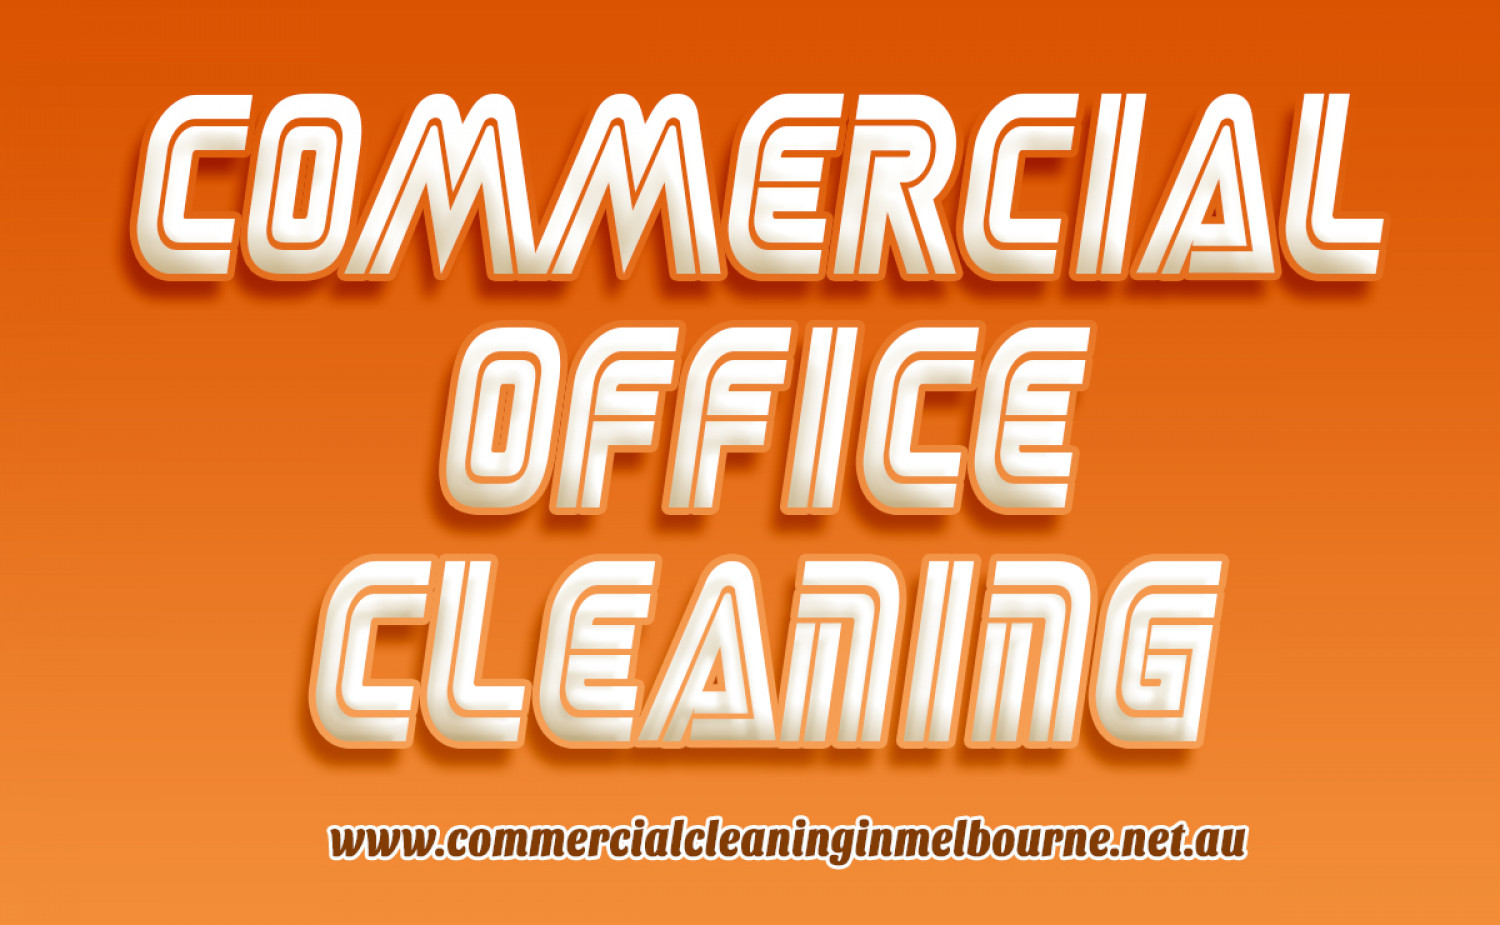 Neat and Clean office with Commercial Cleaning Services Melbourne Infographic